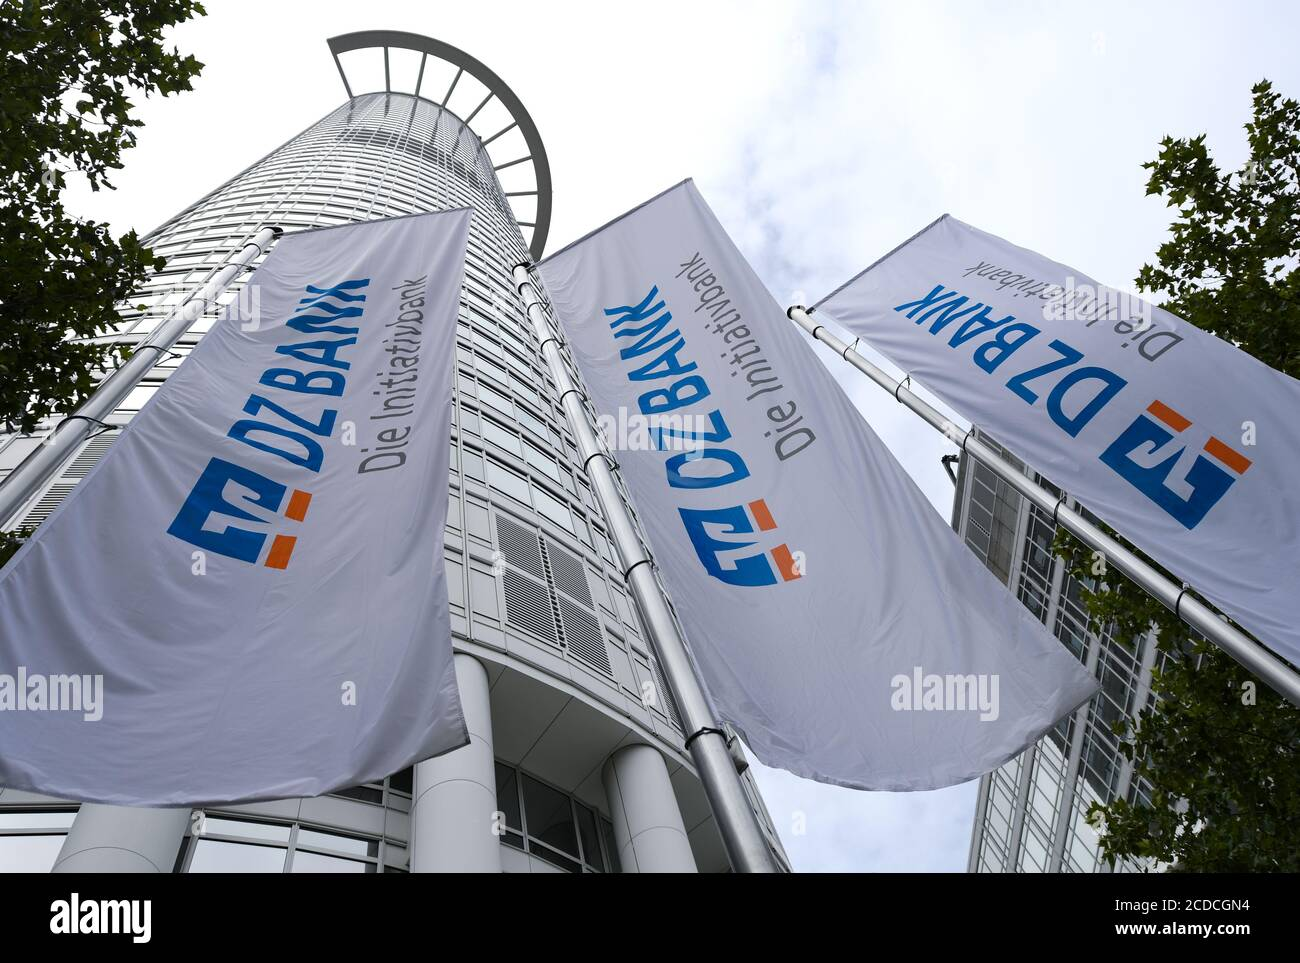 """25 August 2020, Hessen, Frankfurt/Main: Flags with the inscription """"DZ Bank - Die Initiativbank"""" are hanging in front of the office tower """"Westend 1"""", also known as the """"Kronenhochhaus"""", which belongs to the headquarters of DZ Bank. The Deutsche Zentral-Genossenschaftsbank (DZ Bank) presents figures for the first half of 2020 on 28.08.2020. Photo: Arne Dedert/dpa Stock Photo"""